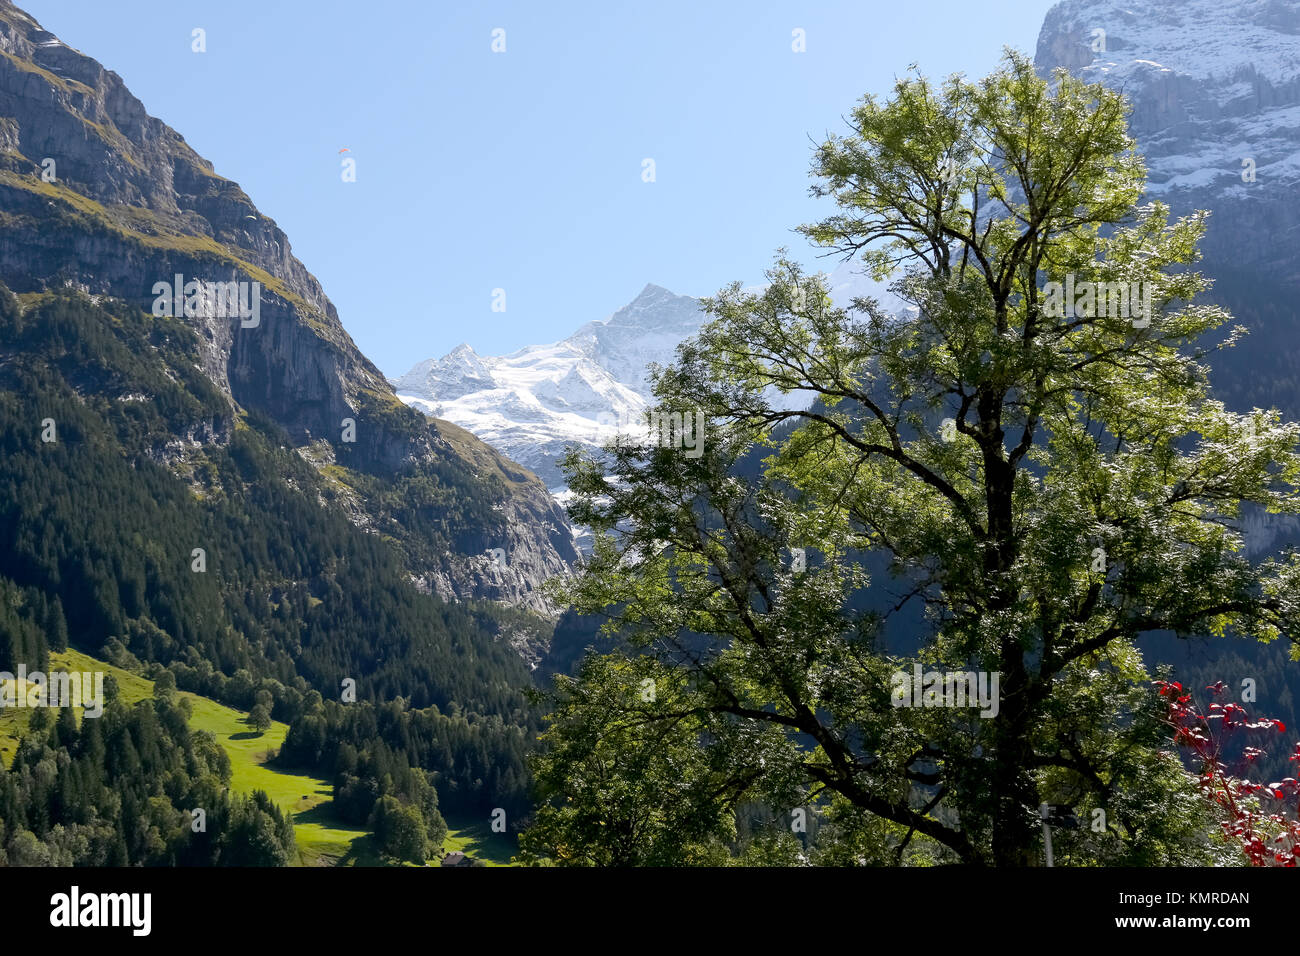 The Large Deciduous Tree Obscures The Alpine Landscape Of The Great Rocky Mountains And Below Are Visible Meadows And Forests